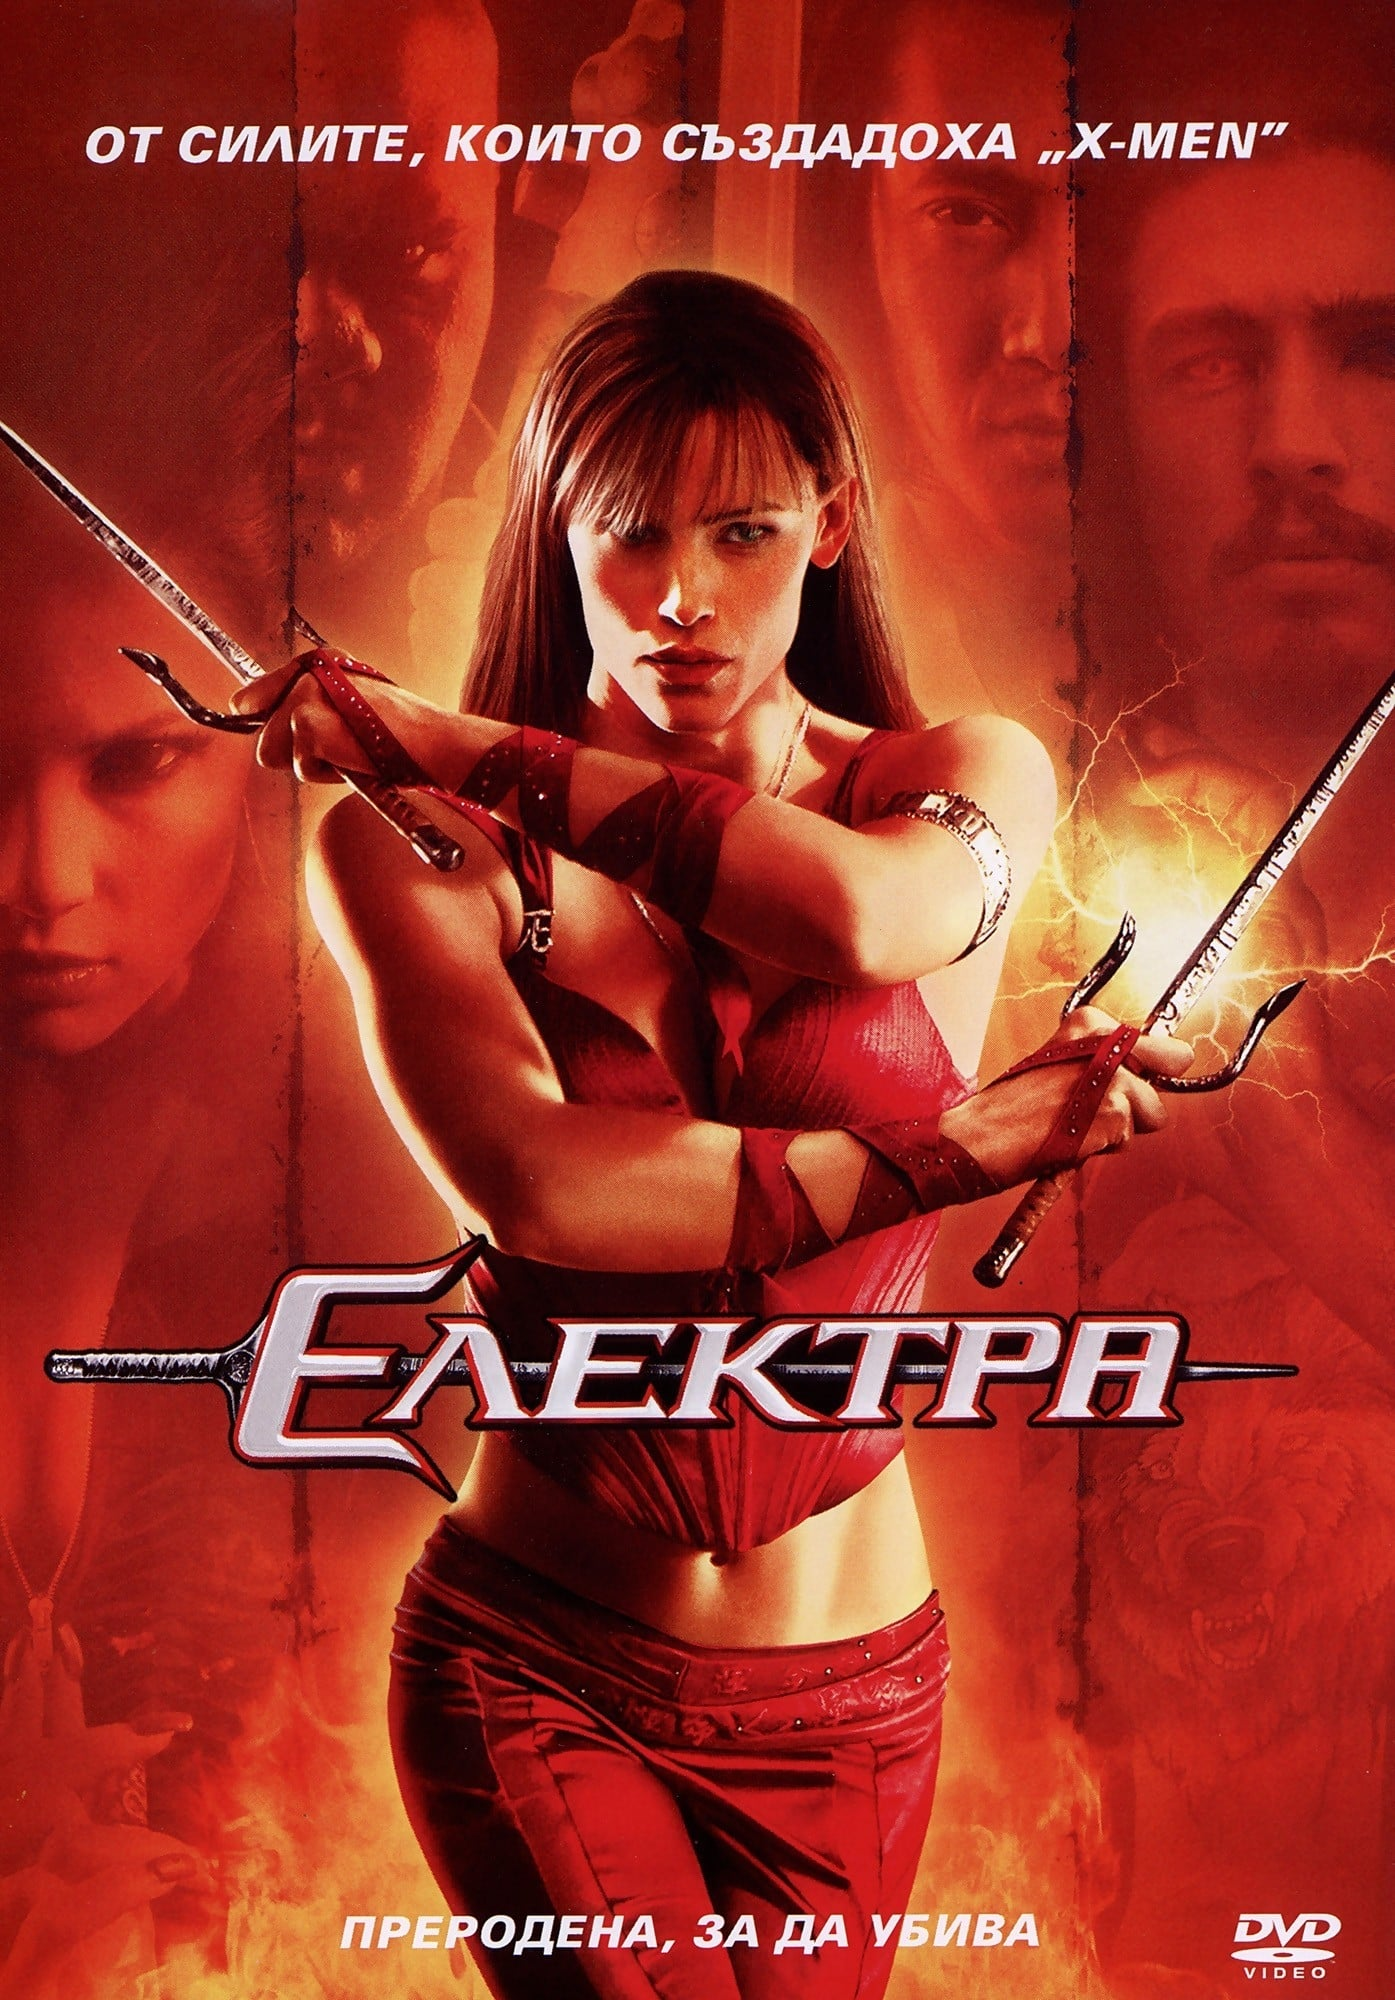 image Jennifer garner elektra the movie super sexy edit